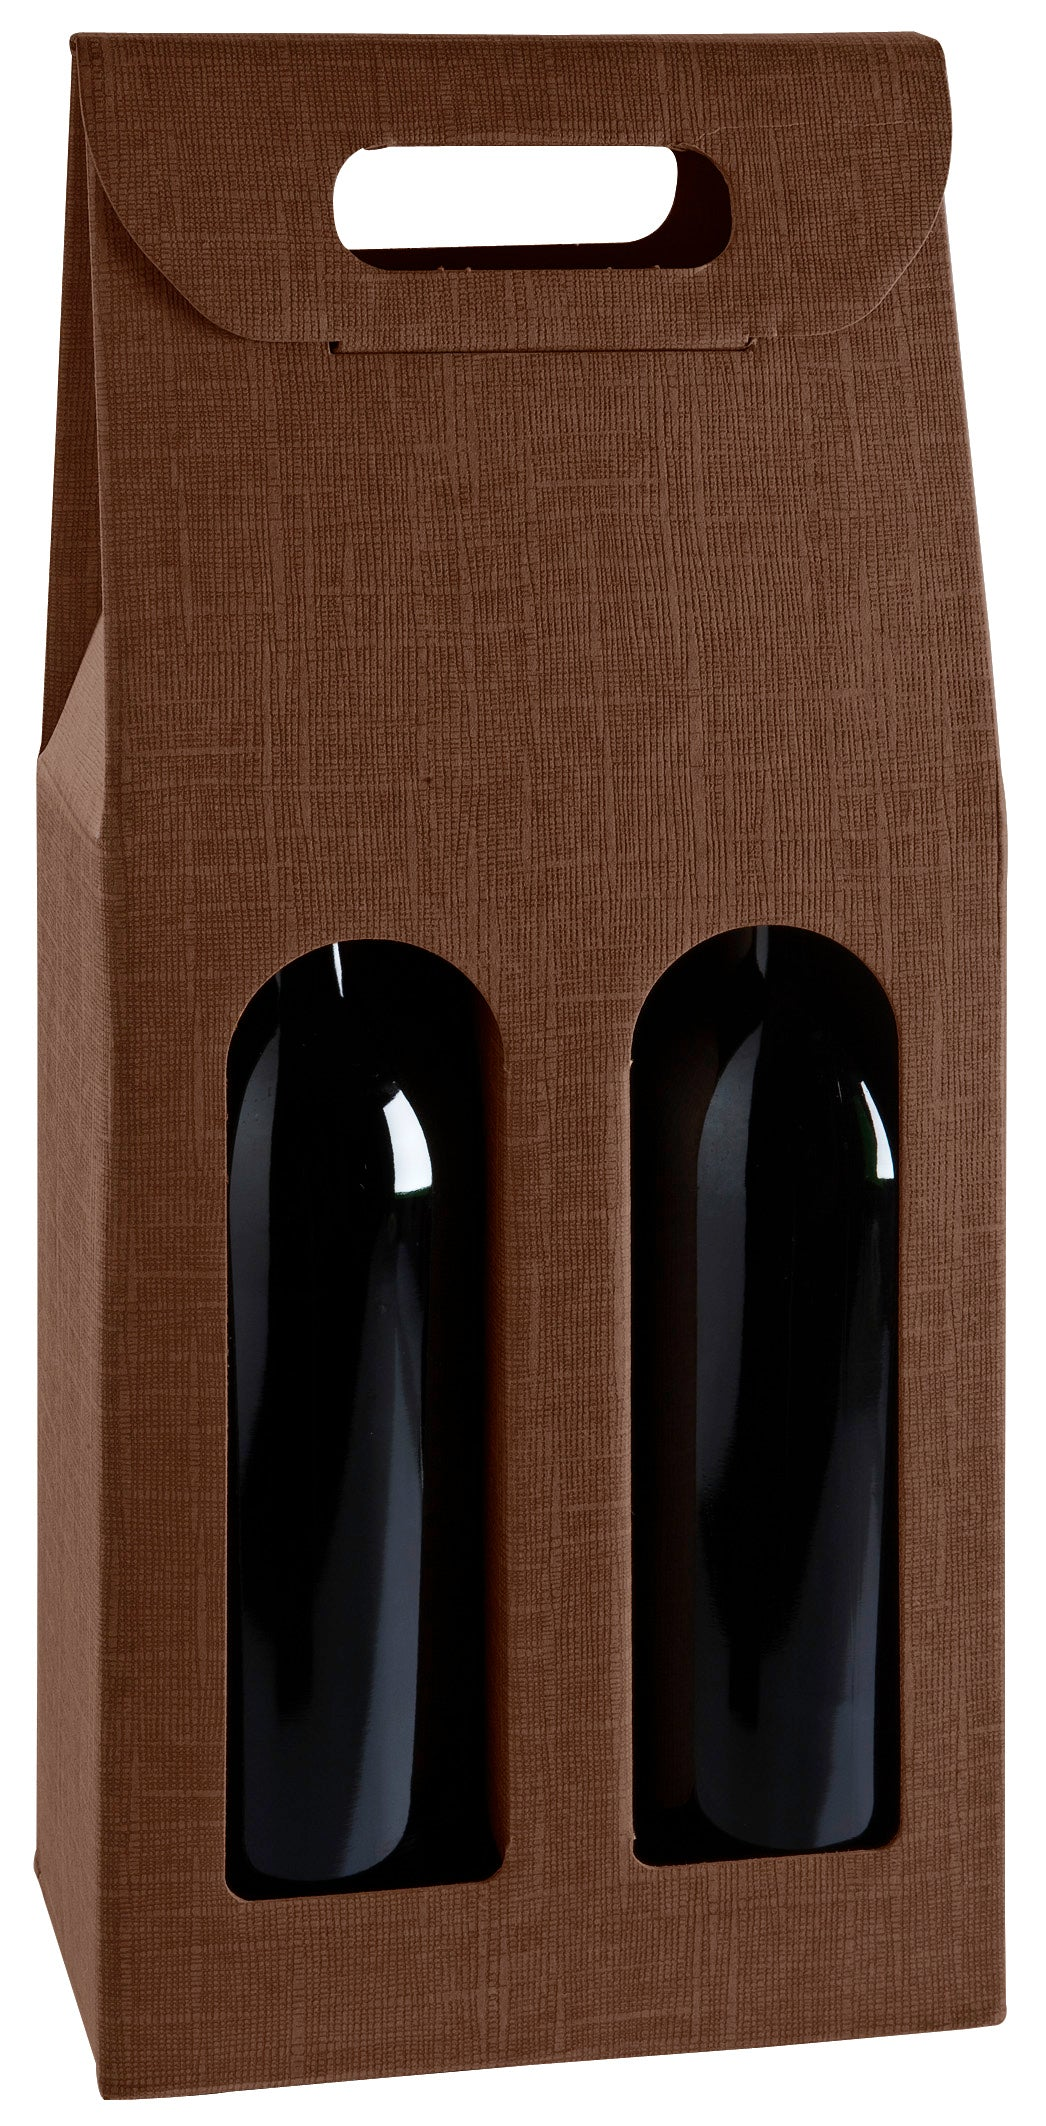 Scala carrier box with window for 2 bottles in brown (x25)